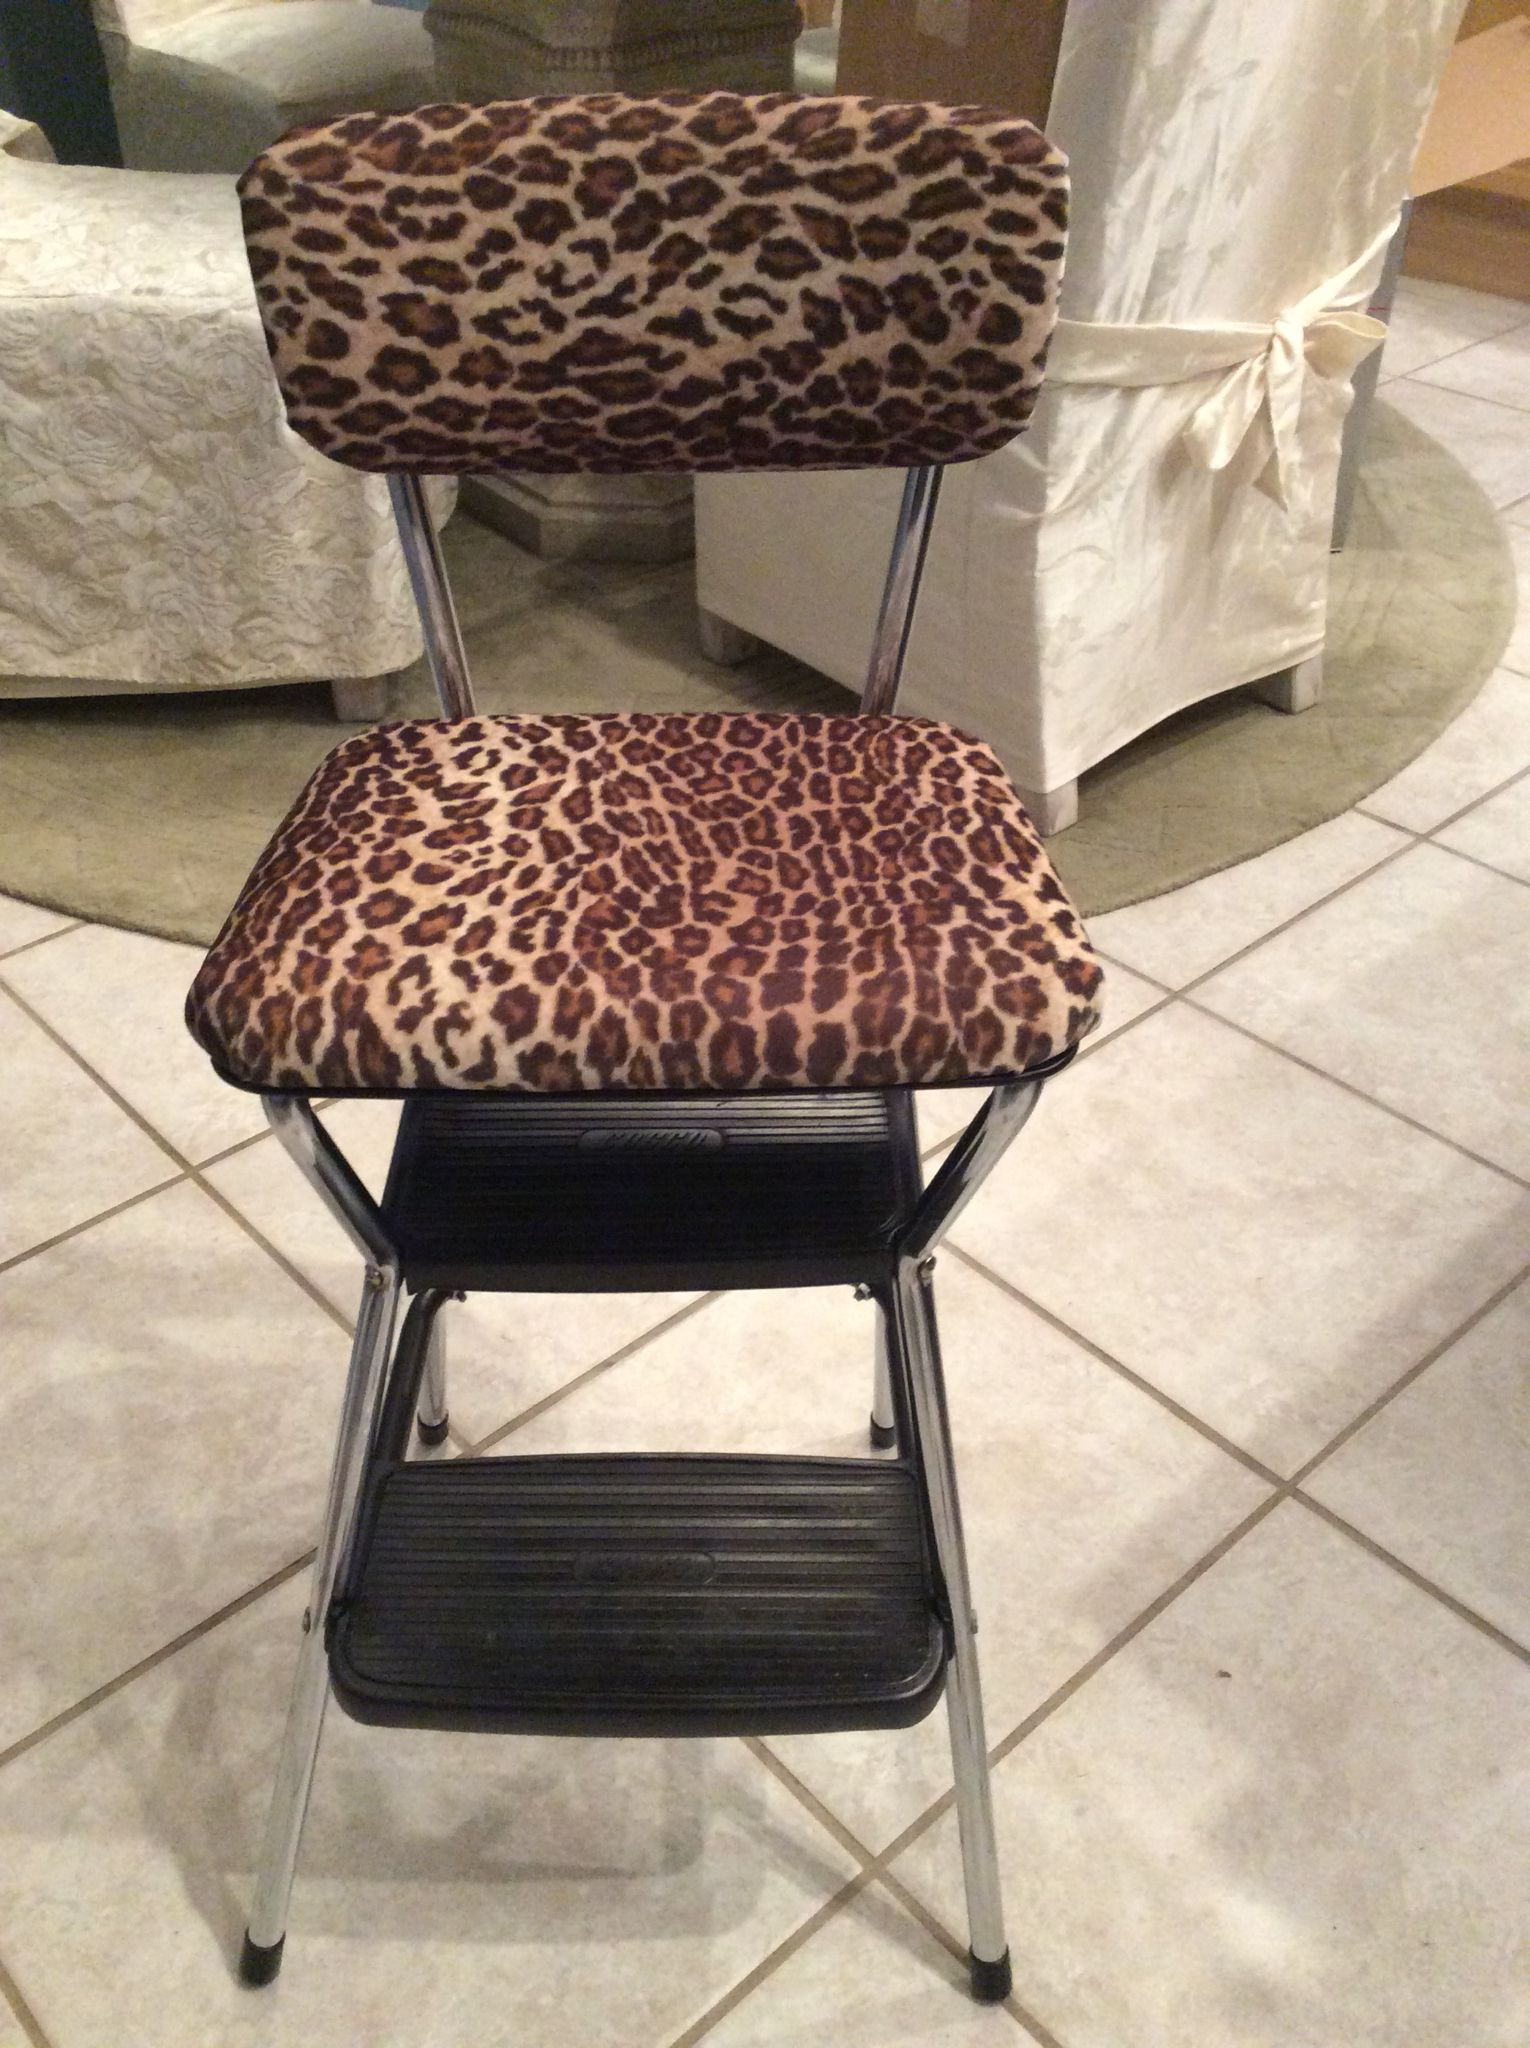 Groovy Vintage Cosco Step Stool Makeover No Tutorial I Just Took Alphanode Cool Chair Designs And Ideas Alphanodeonline